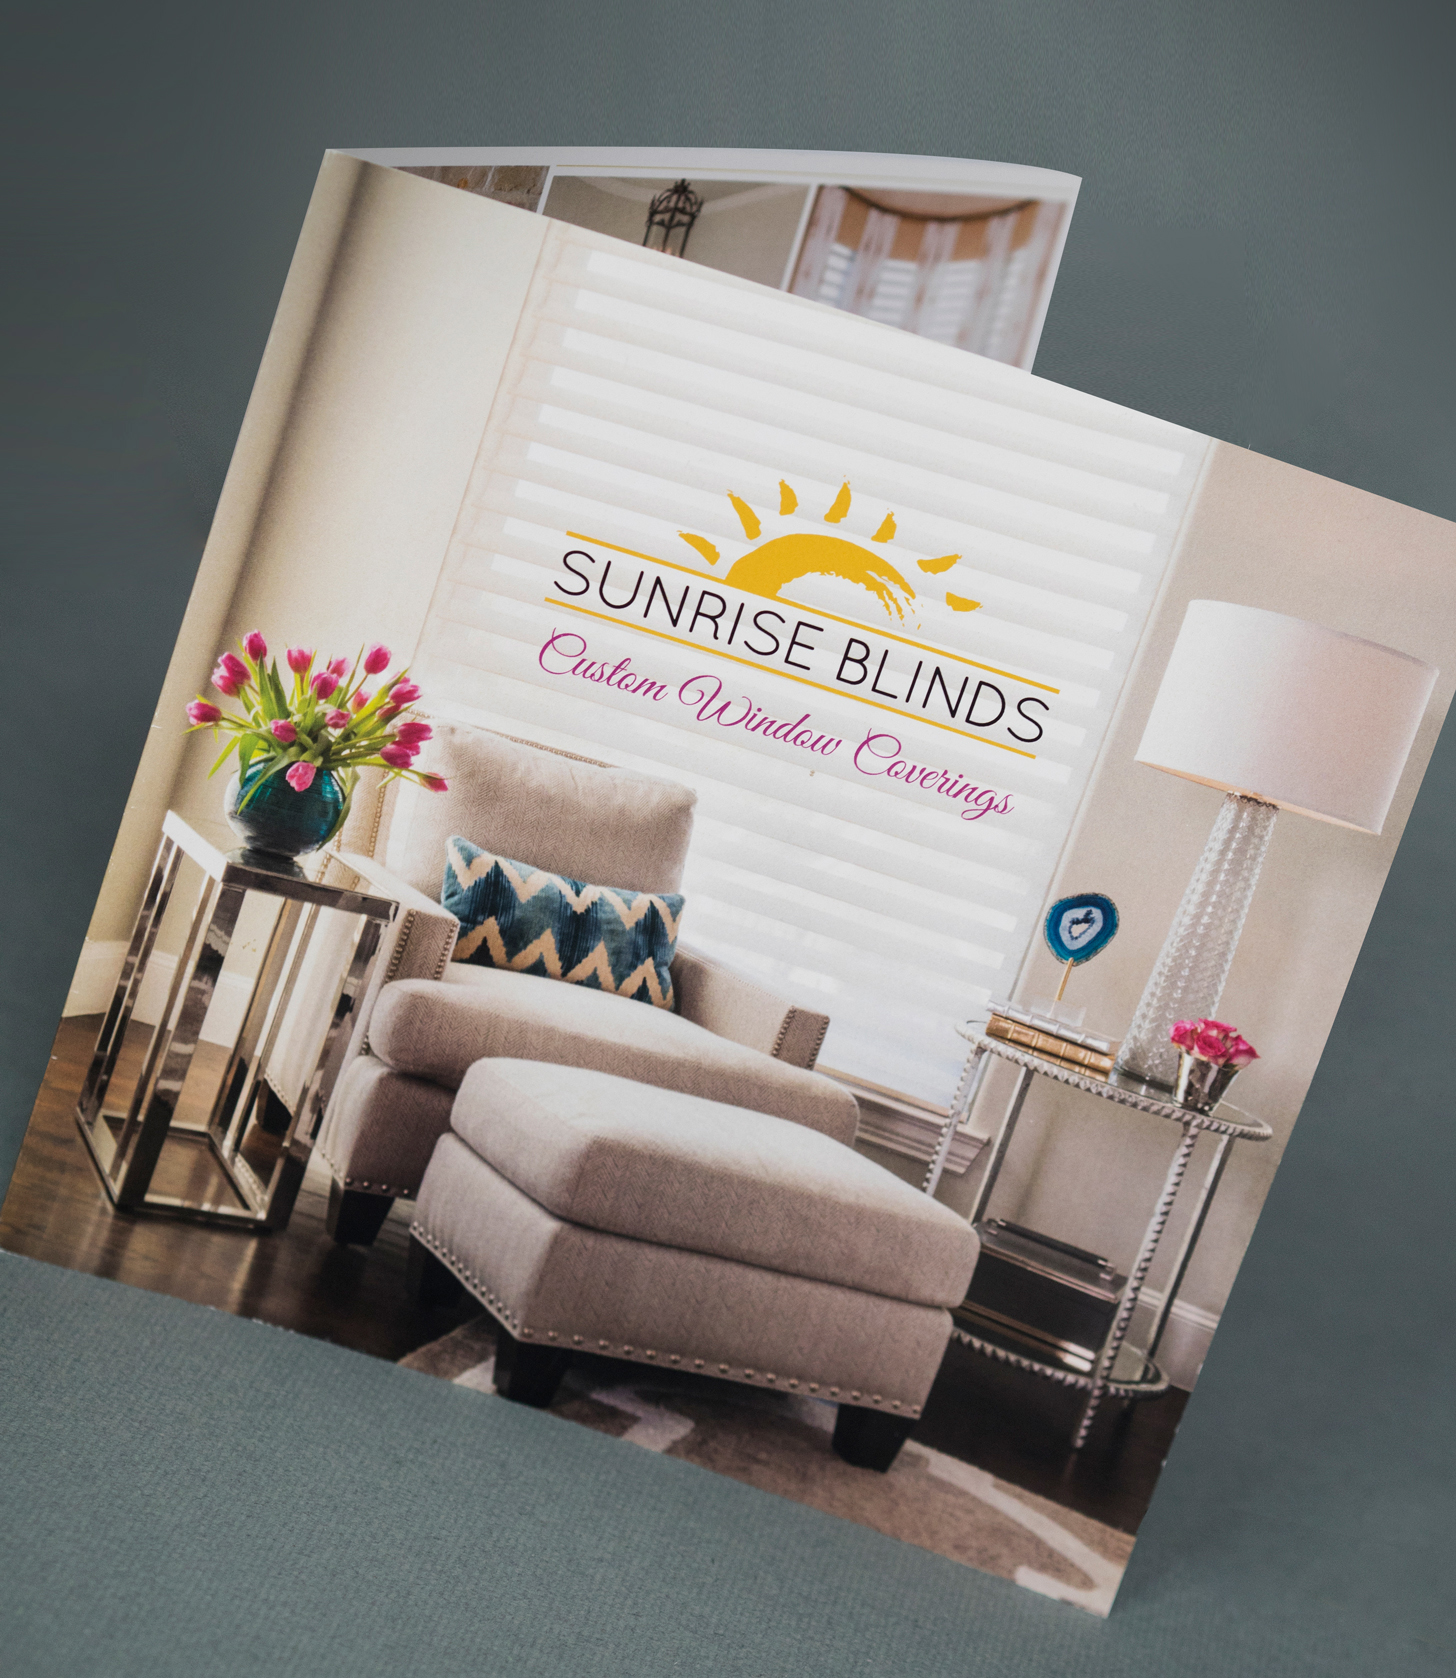 Sunrise Blinds Brochure – arnold graphic design on ive design, berlin design, ibew design, yemen design, rth design, batman design, obj design, dubai design,